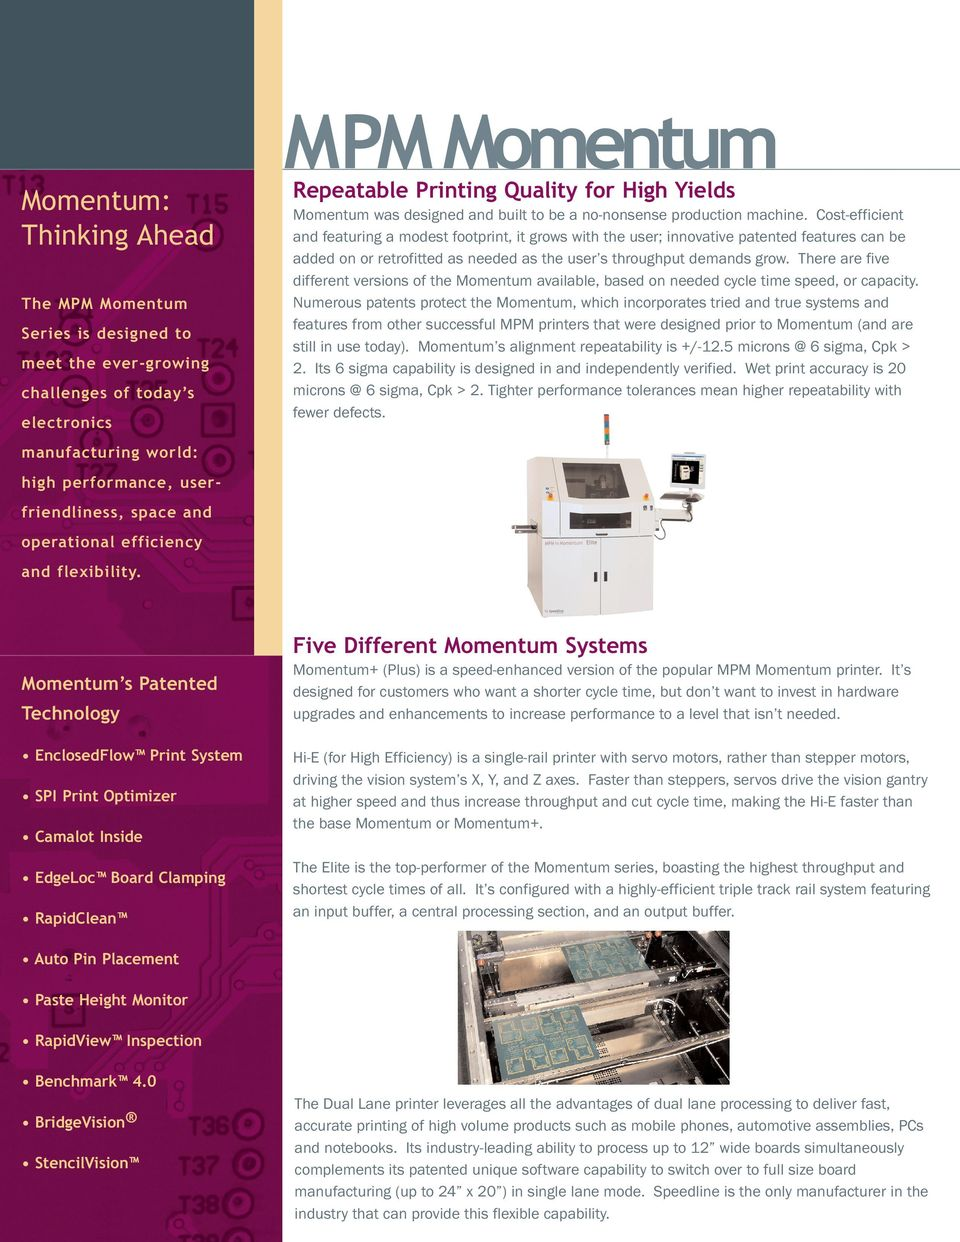 Momentum Series Mpm Printing System A Cost Effective High Stencil Machine Circuit Board Printers Efficient And Featuring Modest Footprint It Grows With The User Innovative